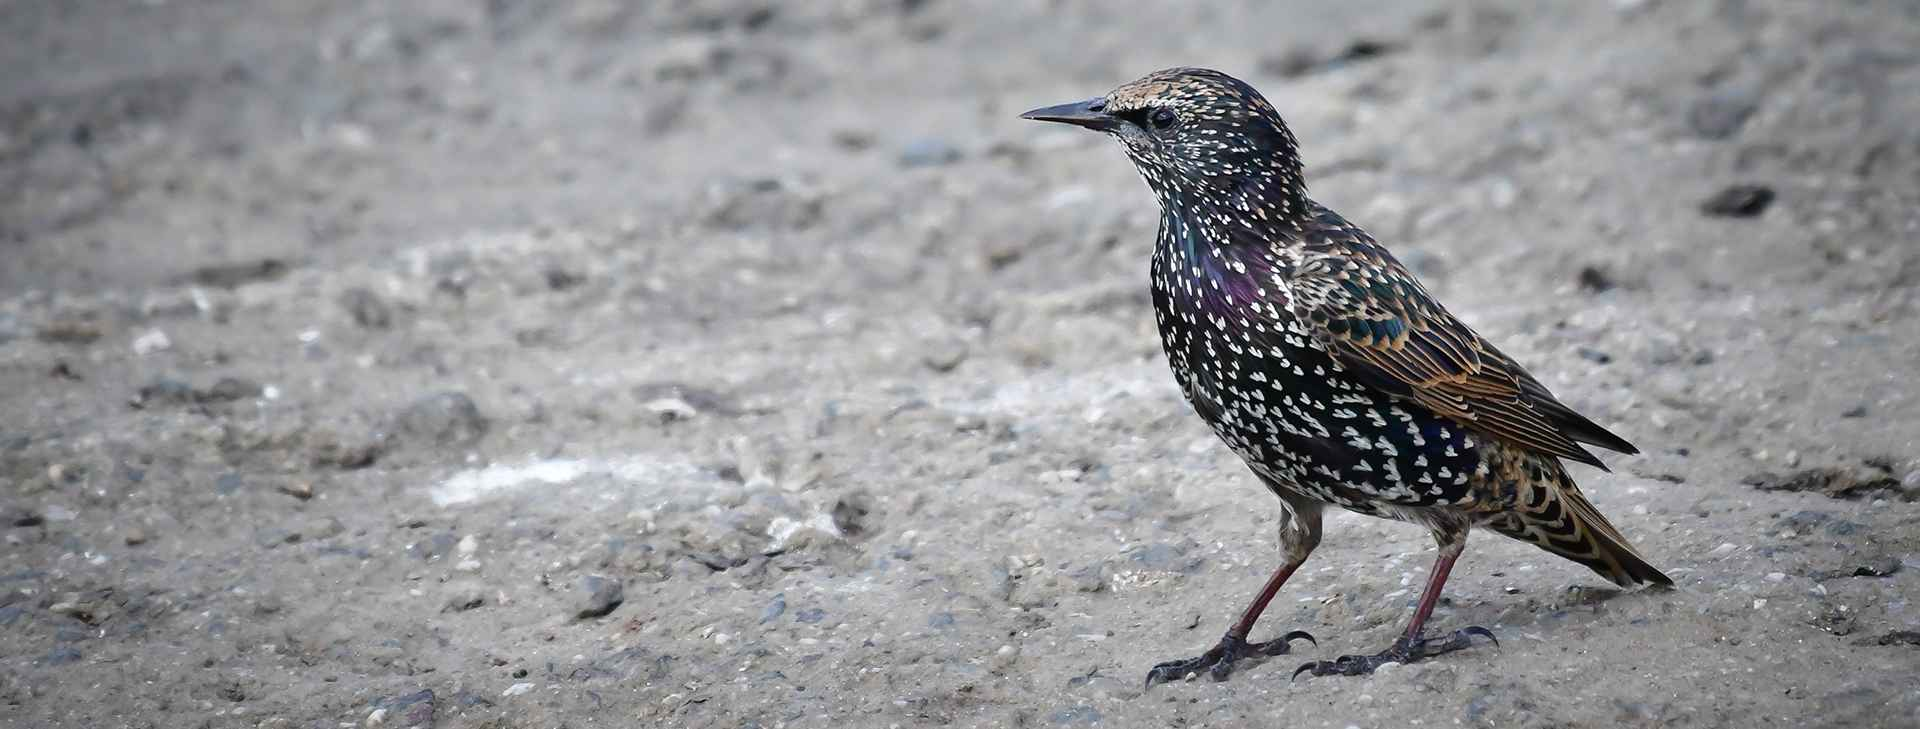 stock-photo-european-starling-common-starling-613116092 crop